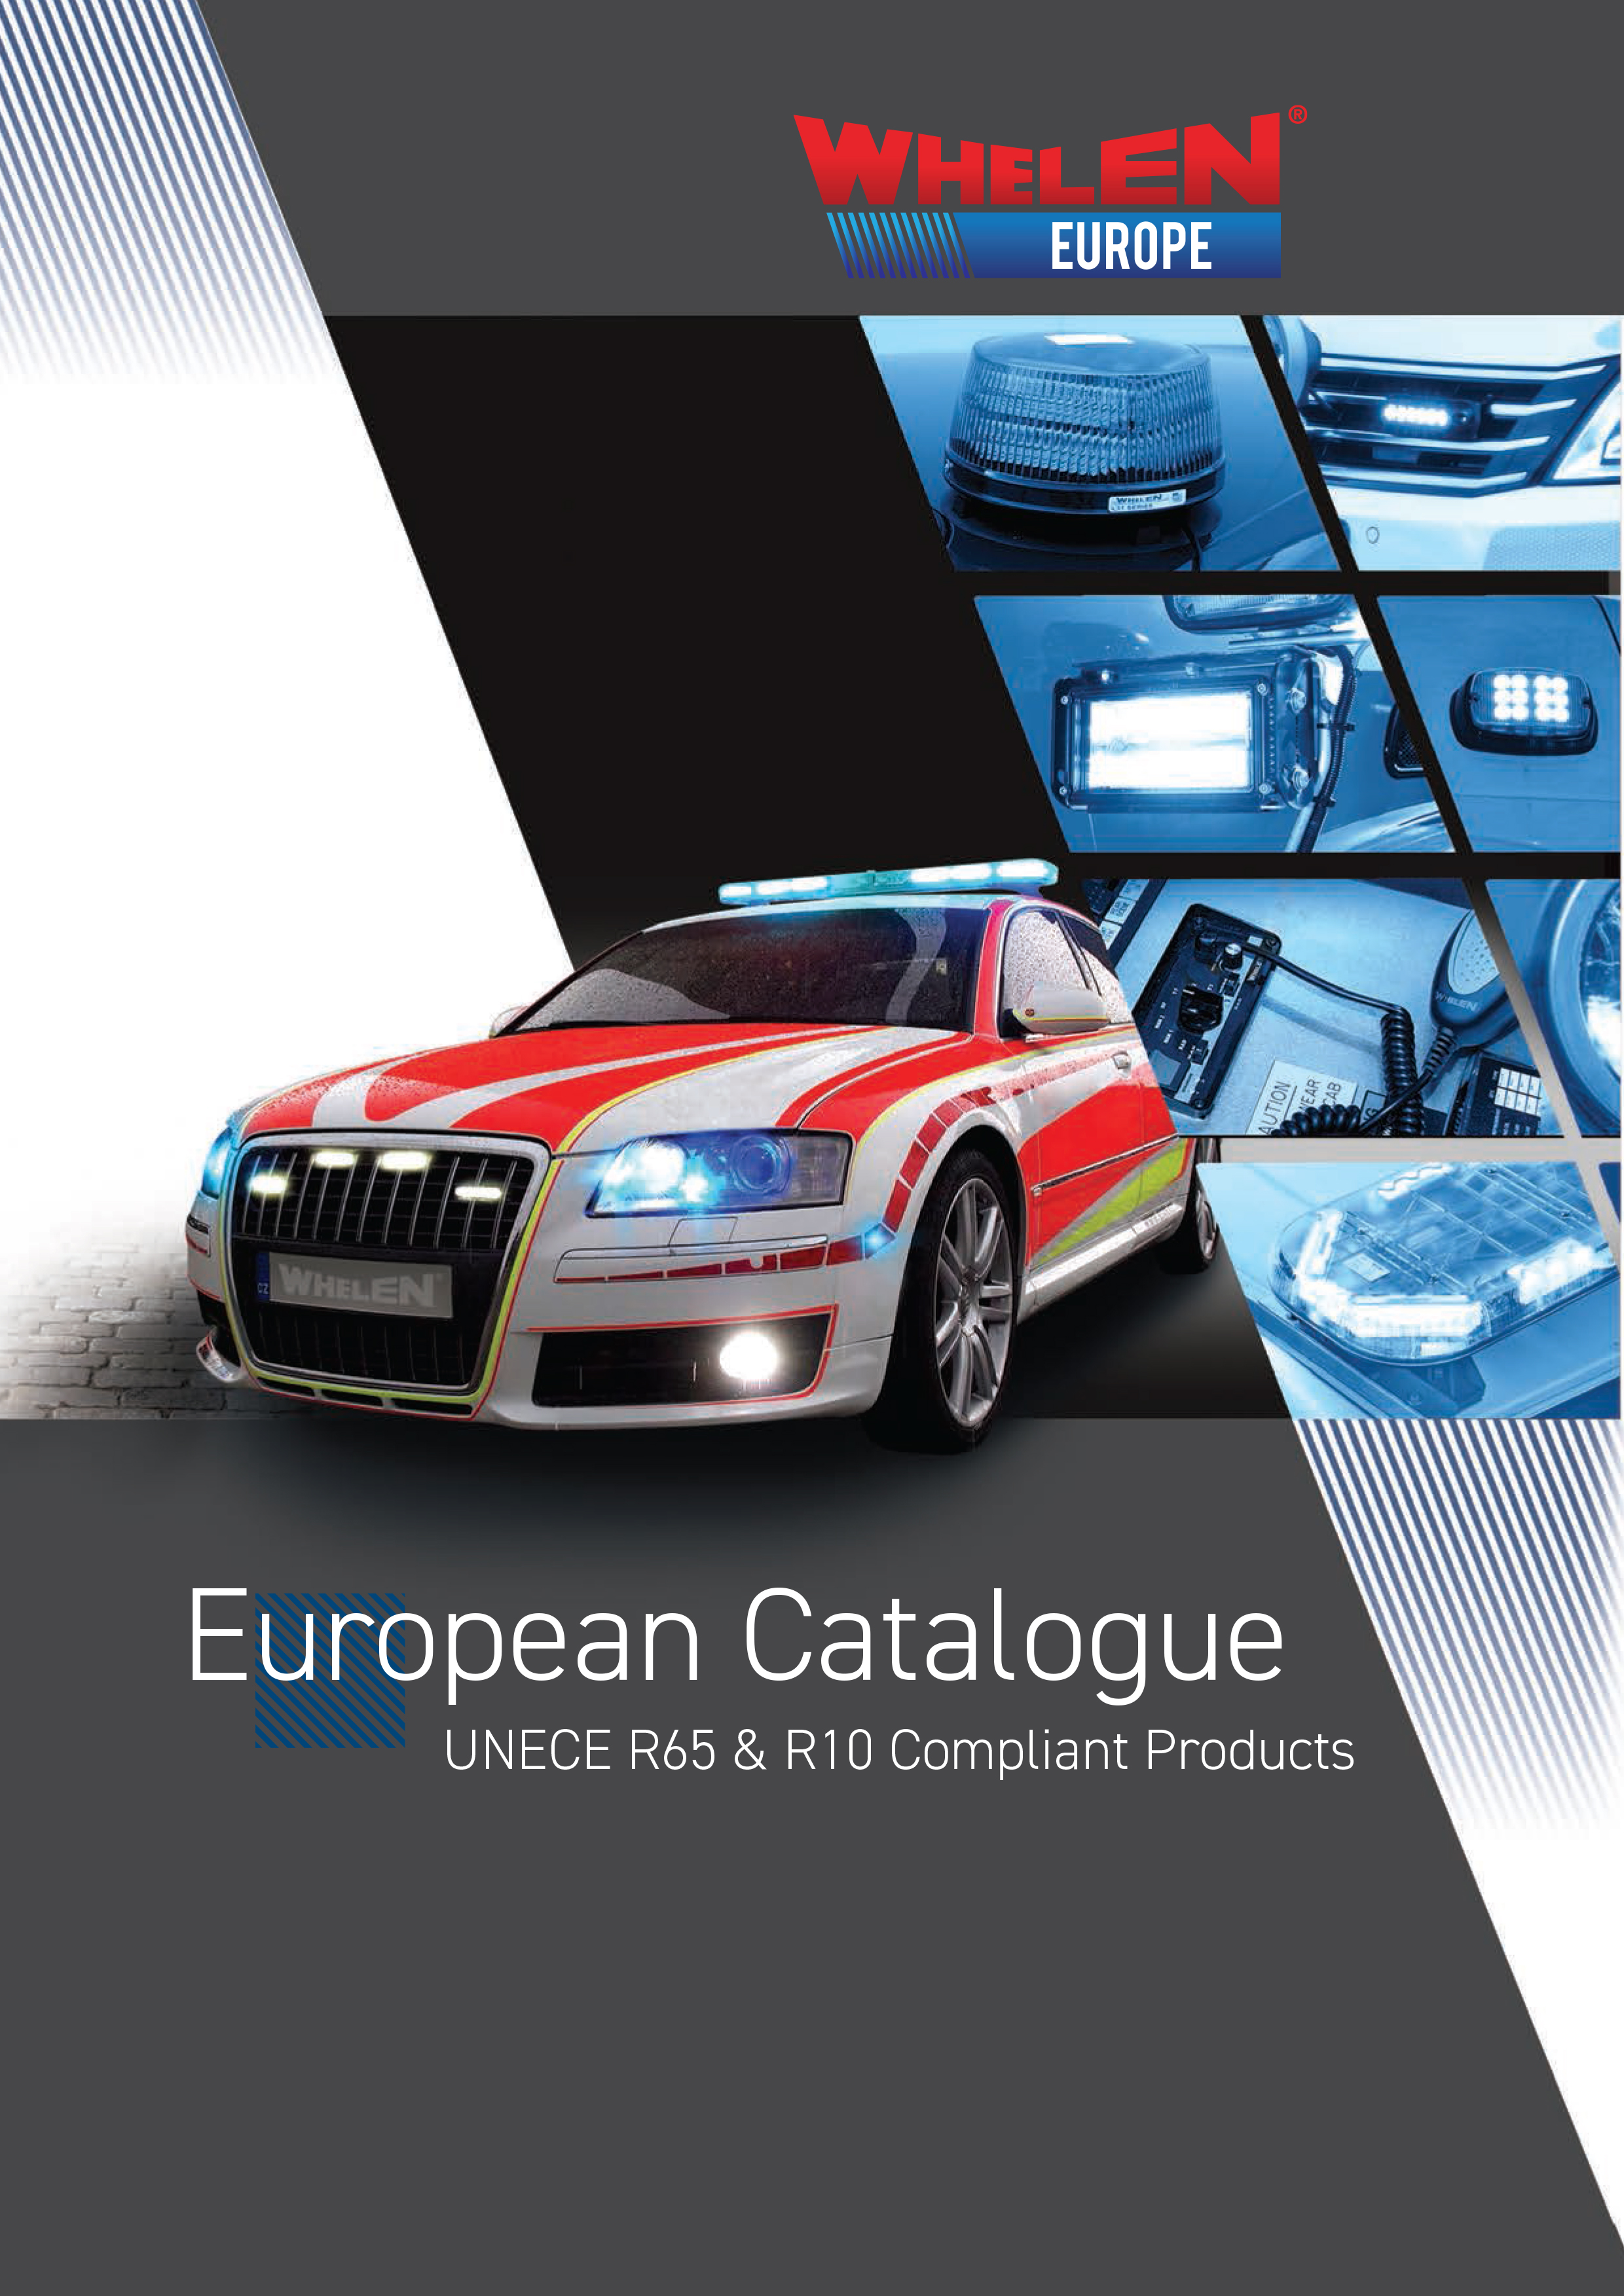 Whelen ECE-R65 compliant products